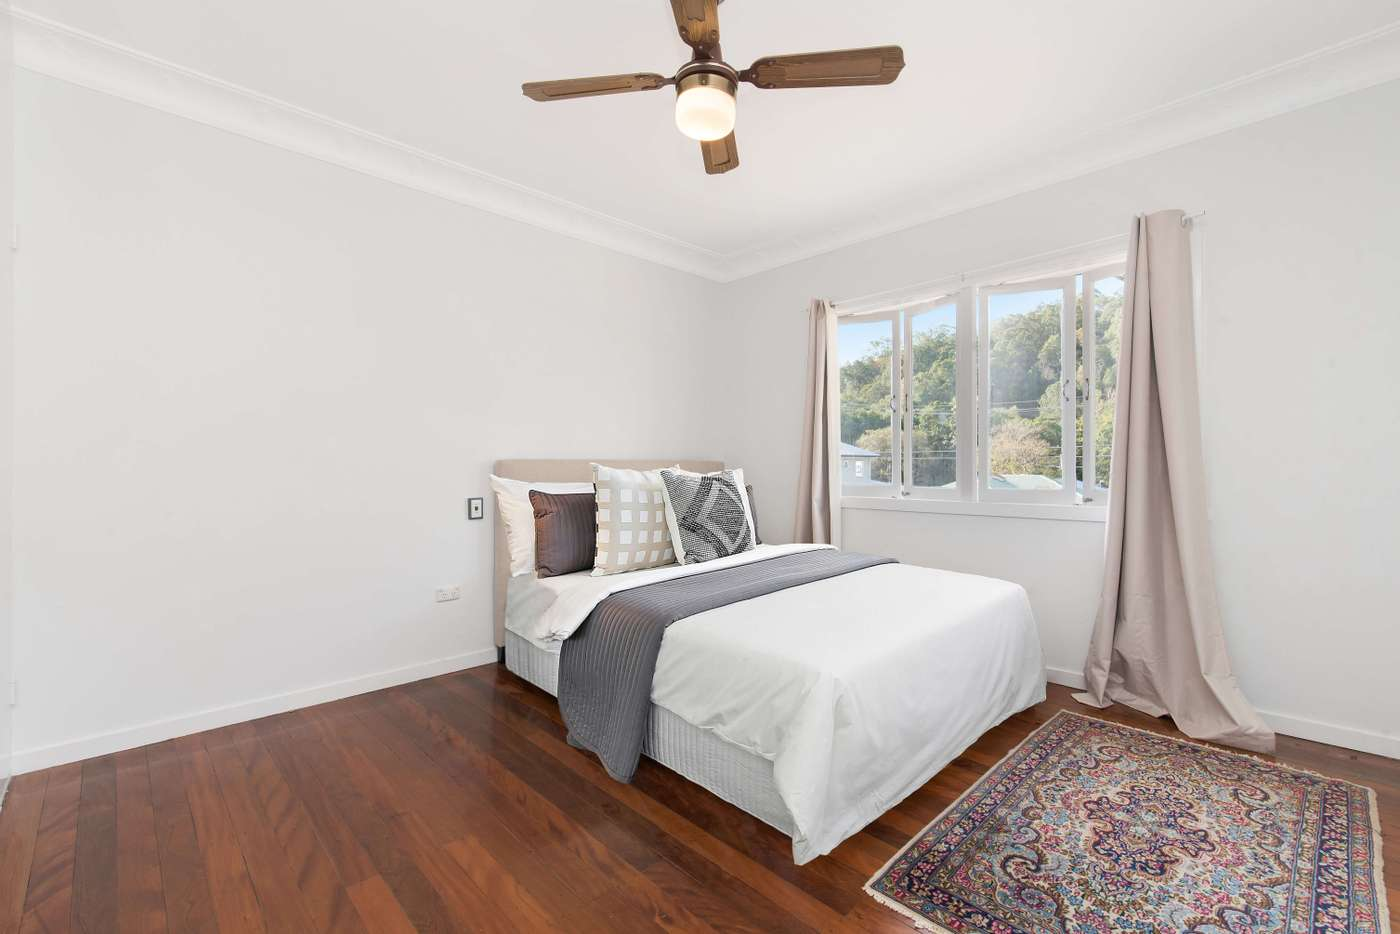 Fifth view of Homely house listing, 12 Romea Street, The Gap QLD 4061